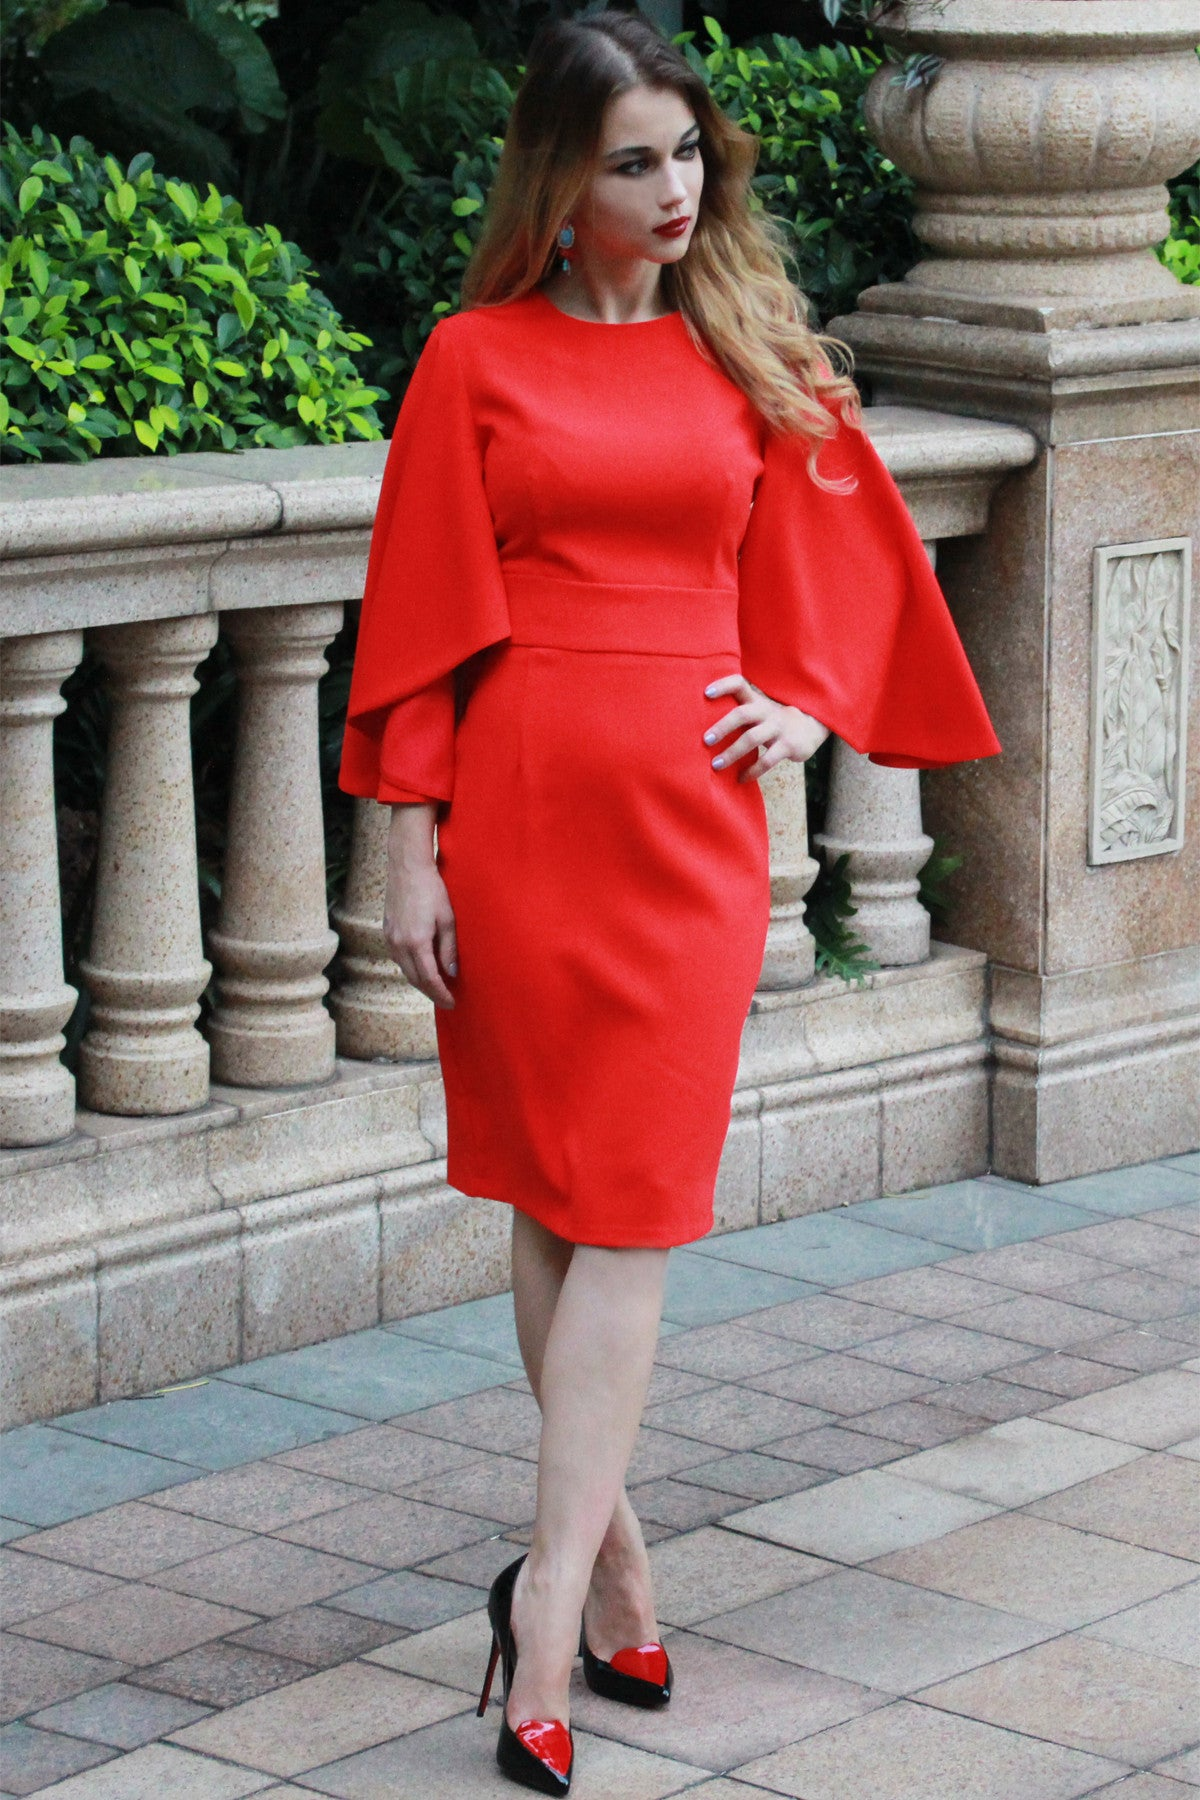 Boutique Dress - Sleeved Red Cocktail Dress | AV HEELS - AVHEELS